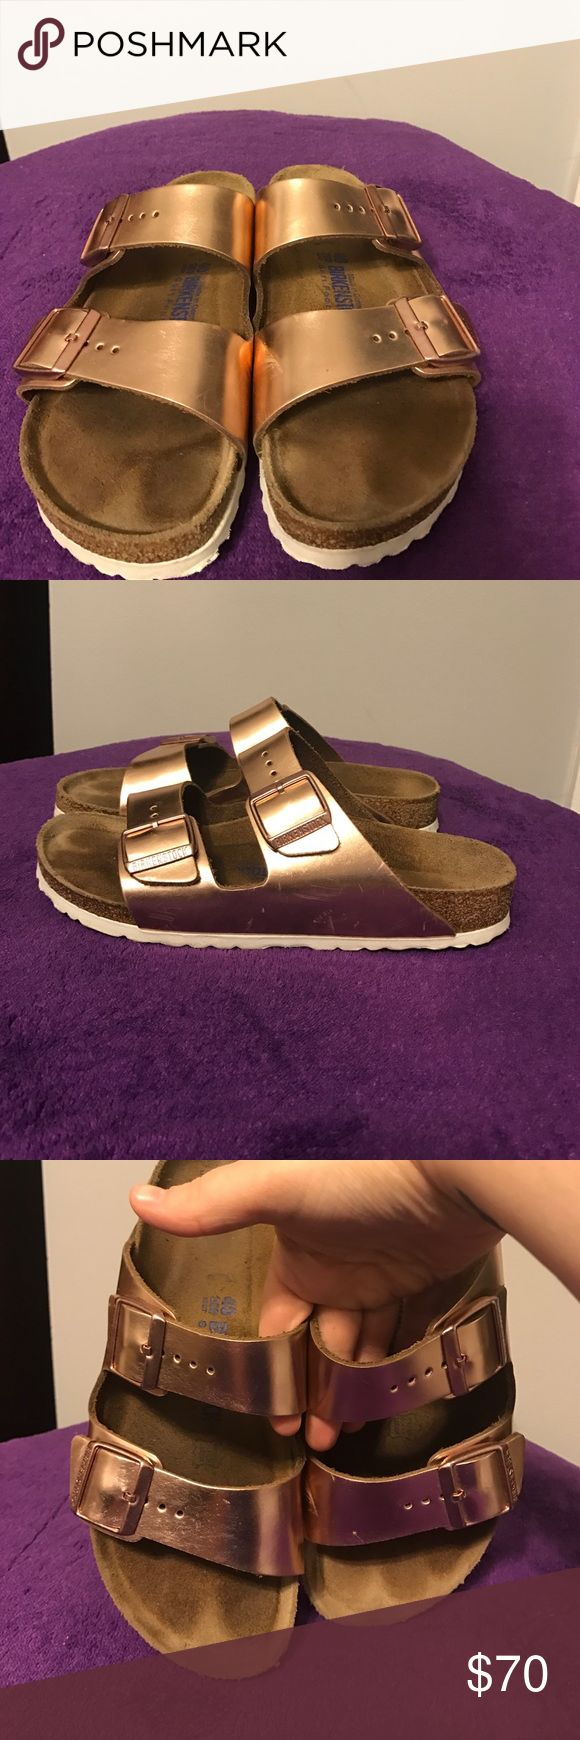 Rose Gold Birkenstocks VERY gently used. Some scuffs. Great condition. Size 40. Birkenstock Shoes Sandals